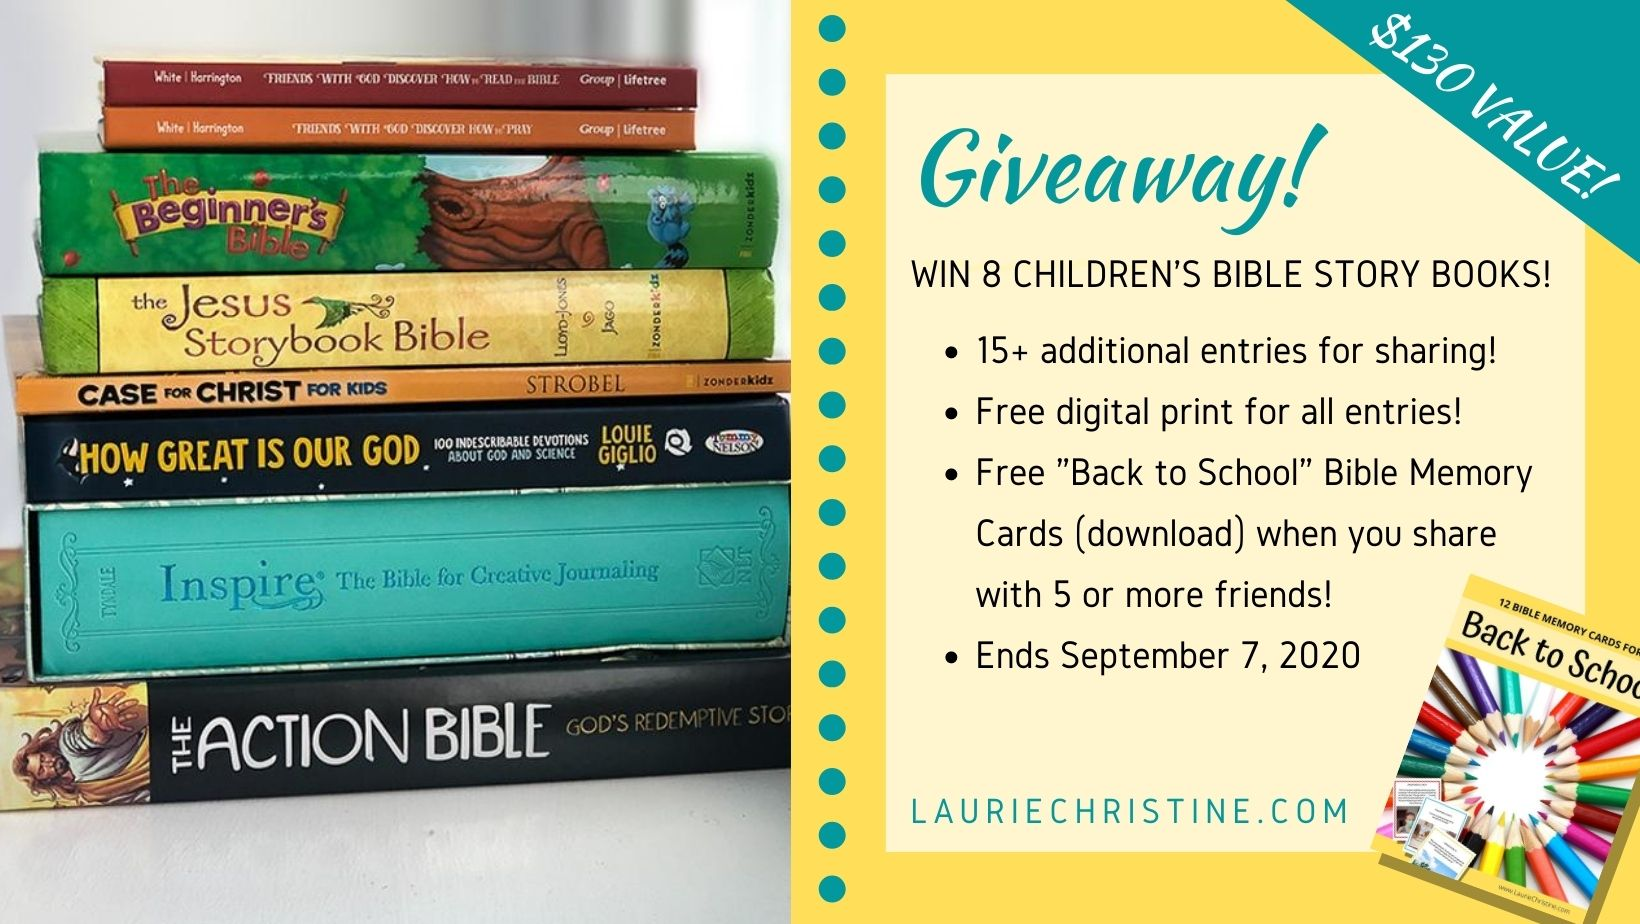 Children's Bible Story Giveaway 2020